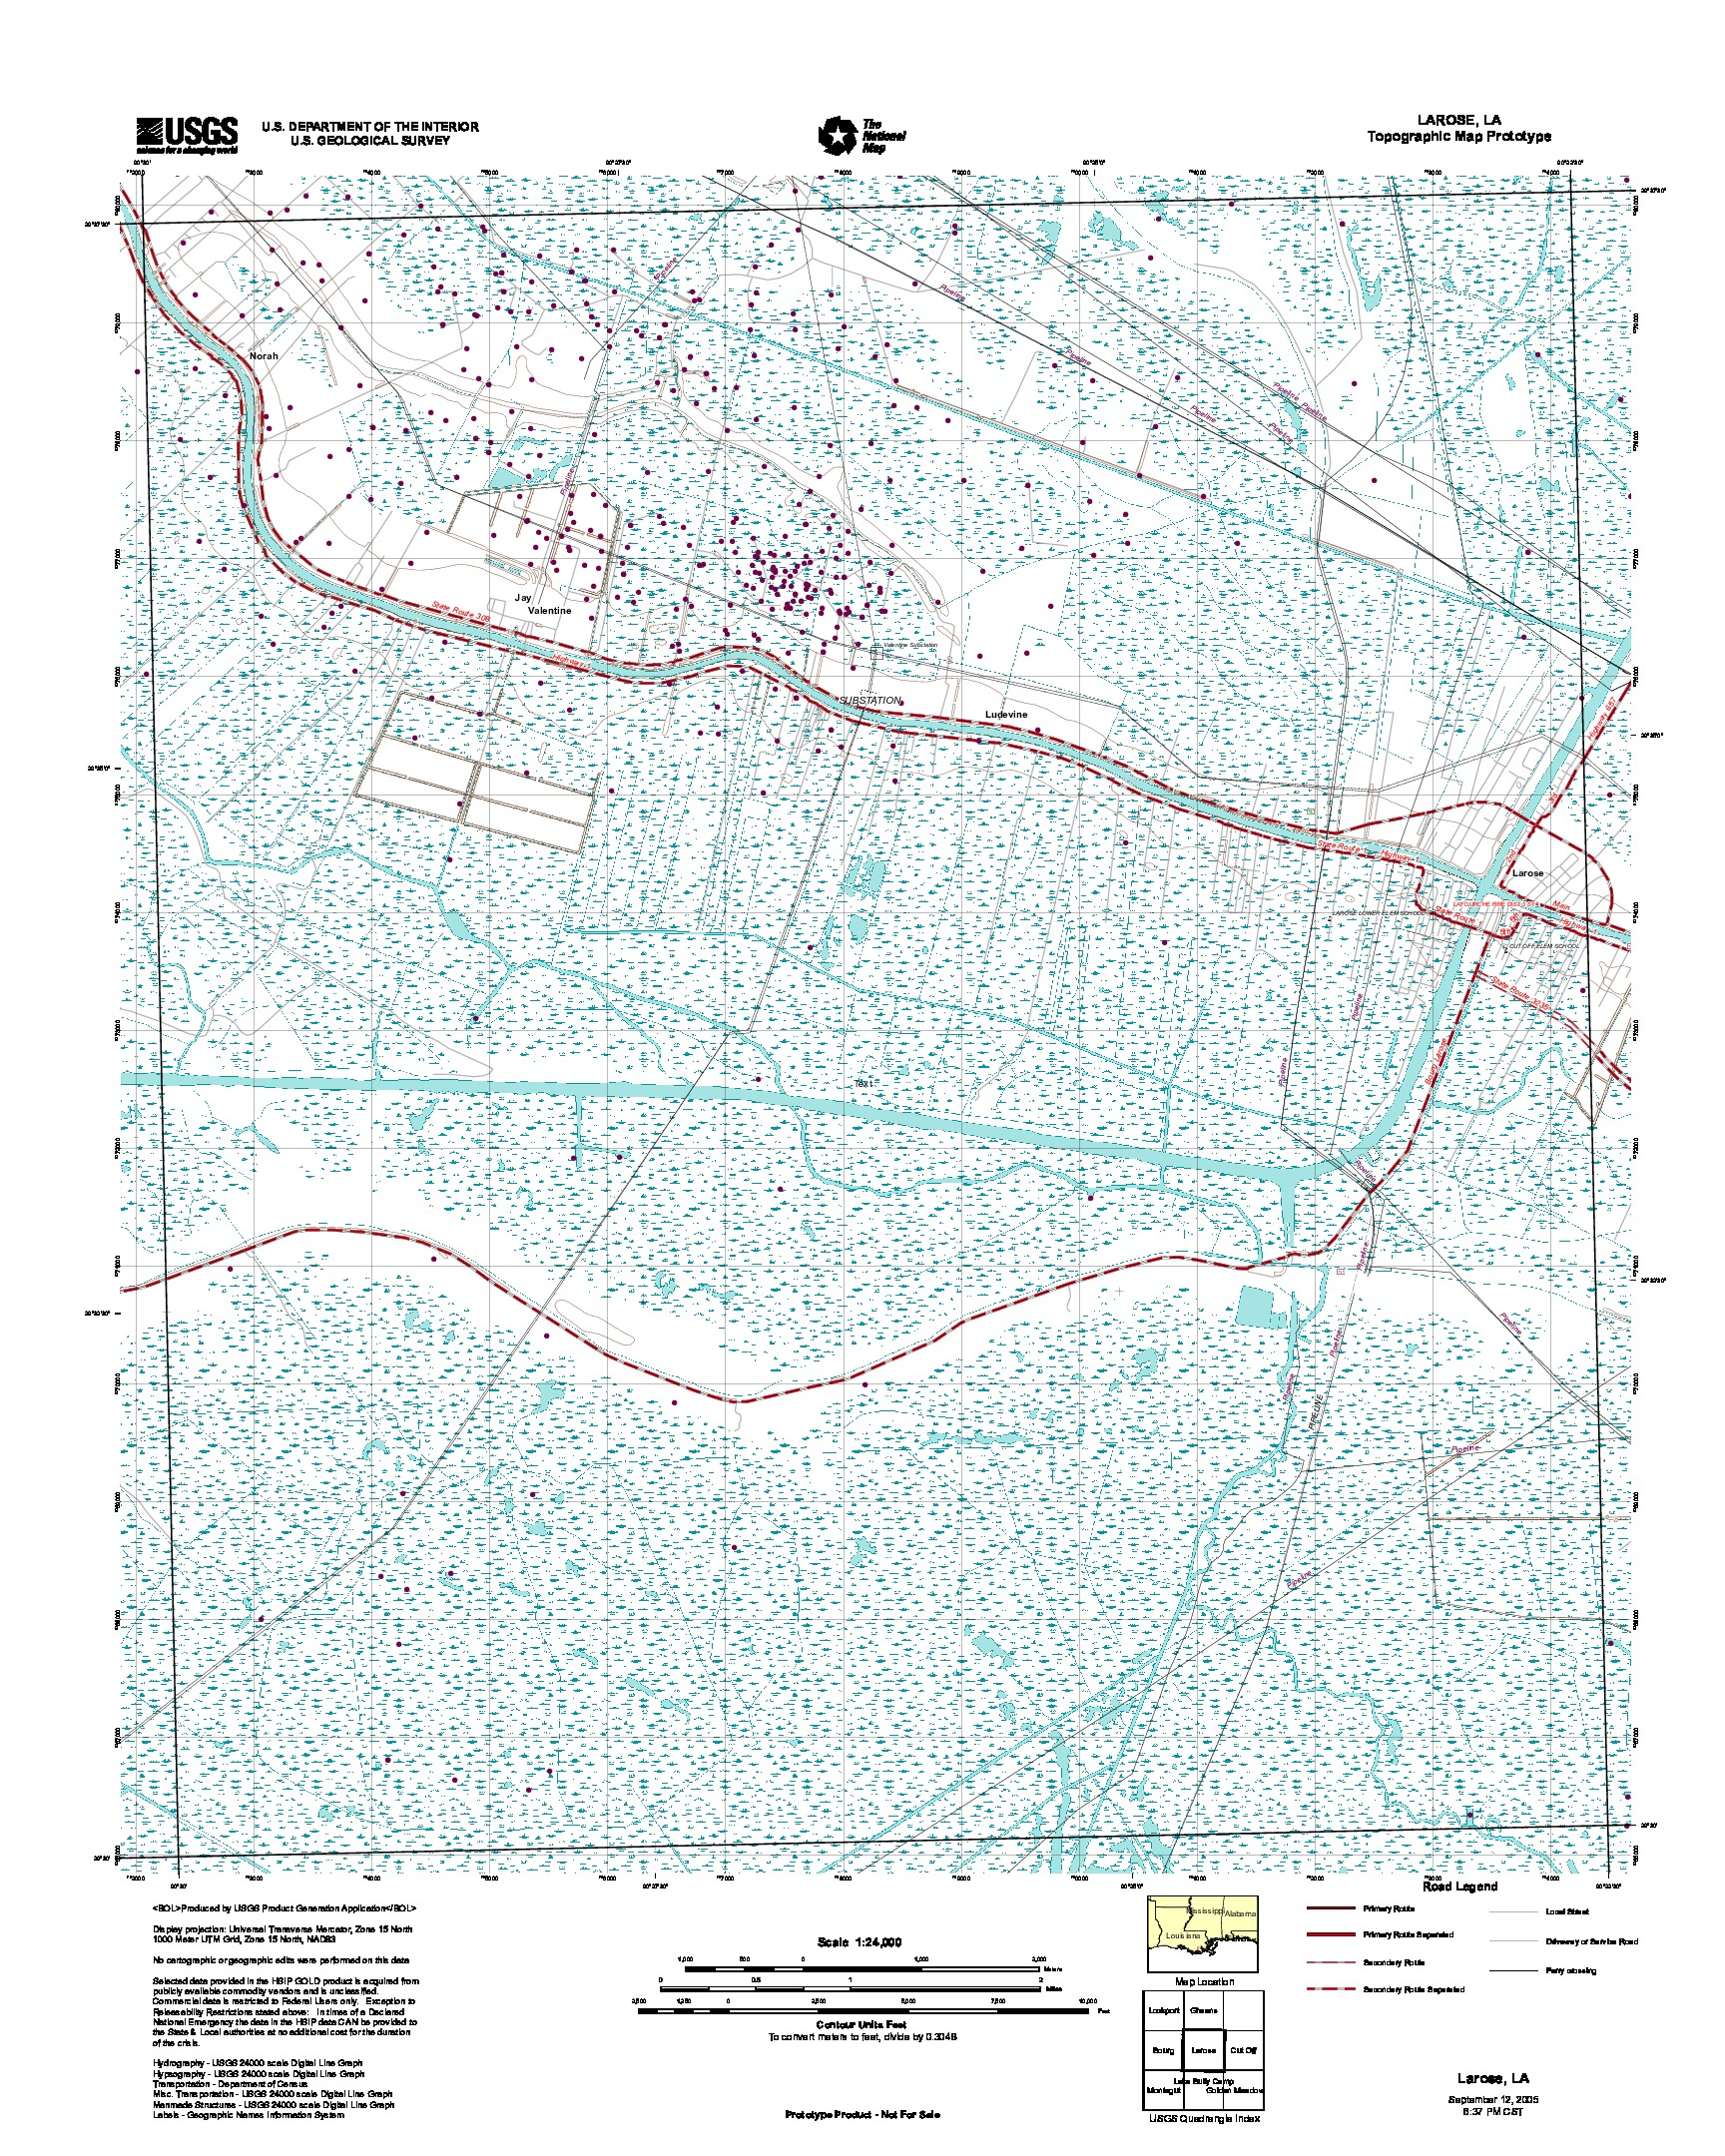 Larose, Topographic Map Prototype, Louisiana, United States, September 12, 2005